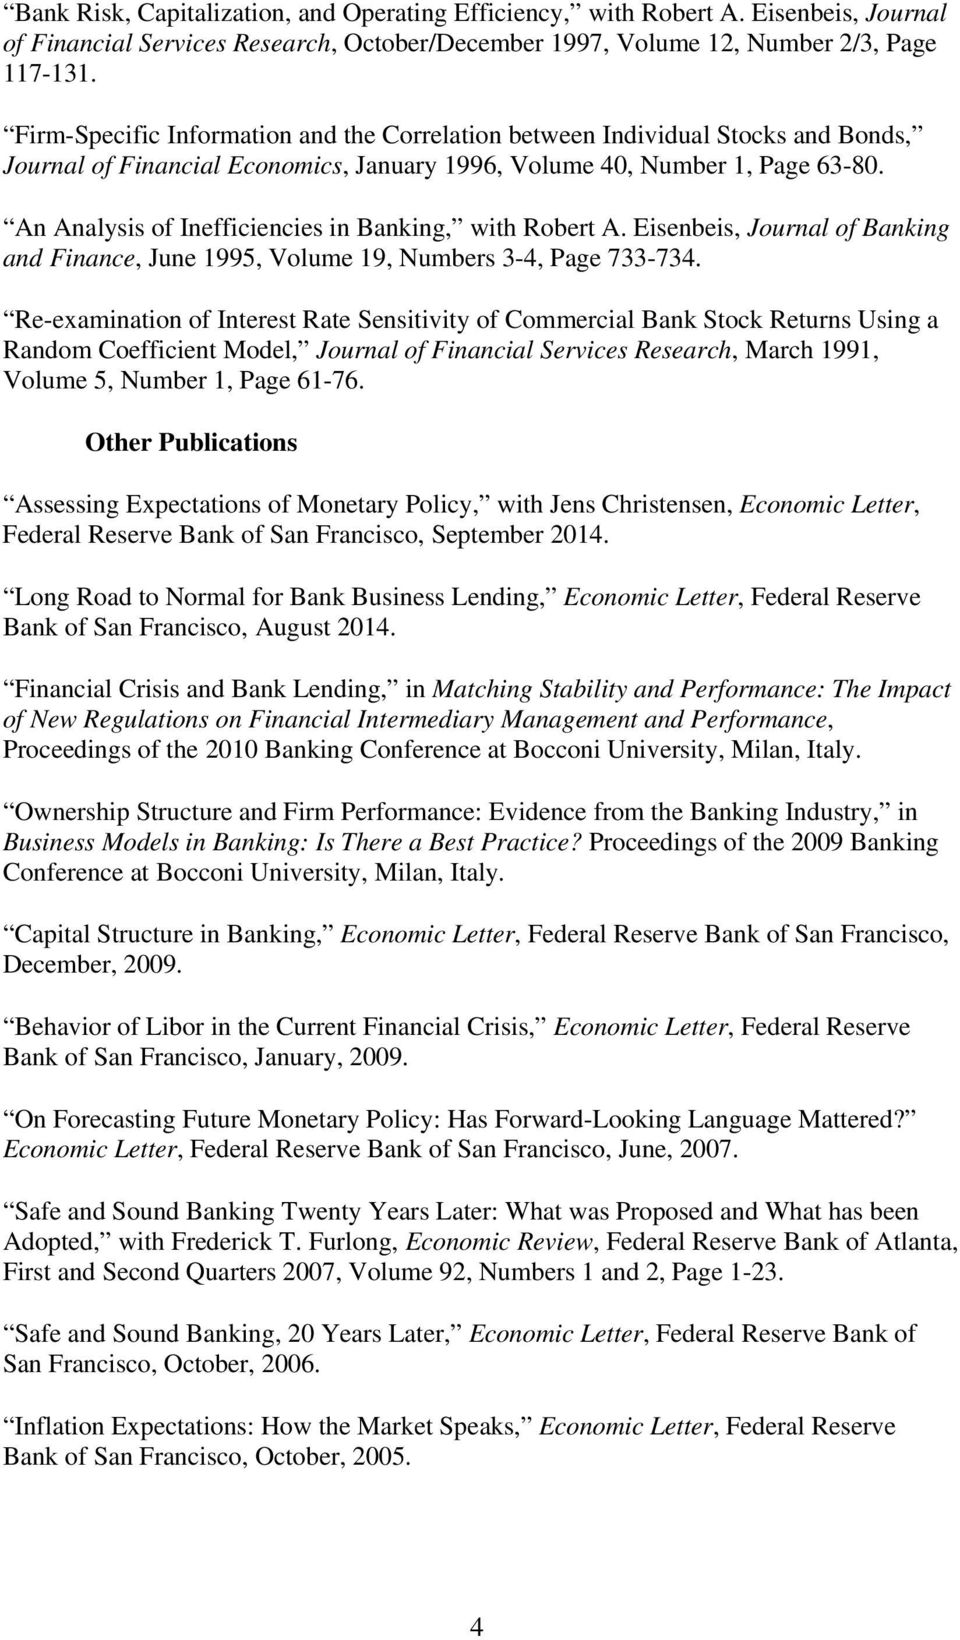 An Analysis of Inefficiencies in Banking, with Robert A. Eisenbeis, Journal of Banking and Finance, June 1995, Volume 19, Numbers 3-4, Page 733-734.